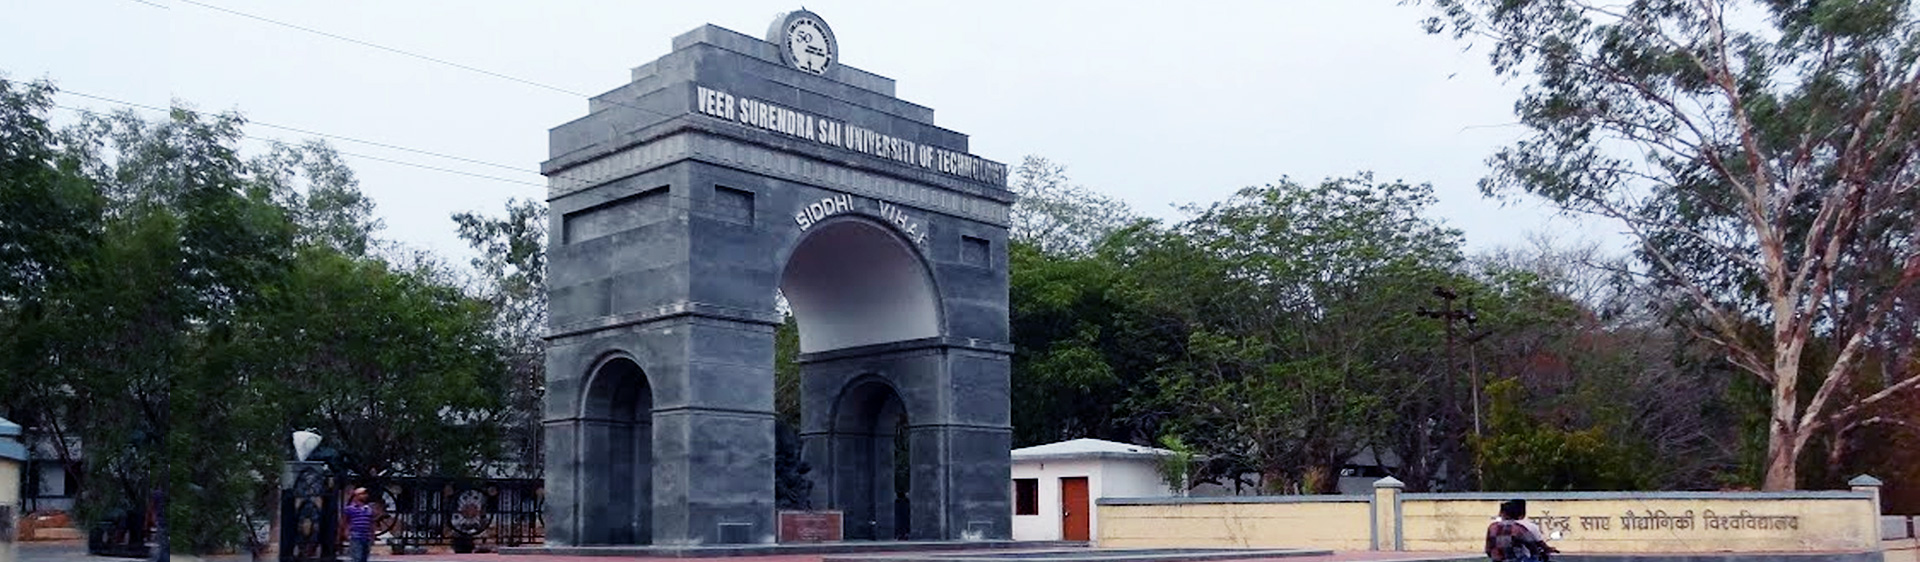 The Veer Surendra Sai University of Technology (VSSUT) Odisha was formed by Orissa Act 9 of 2009 by converting University College of Engineering (UCE), Burla